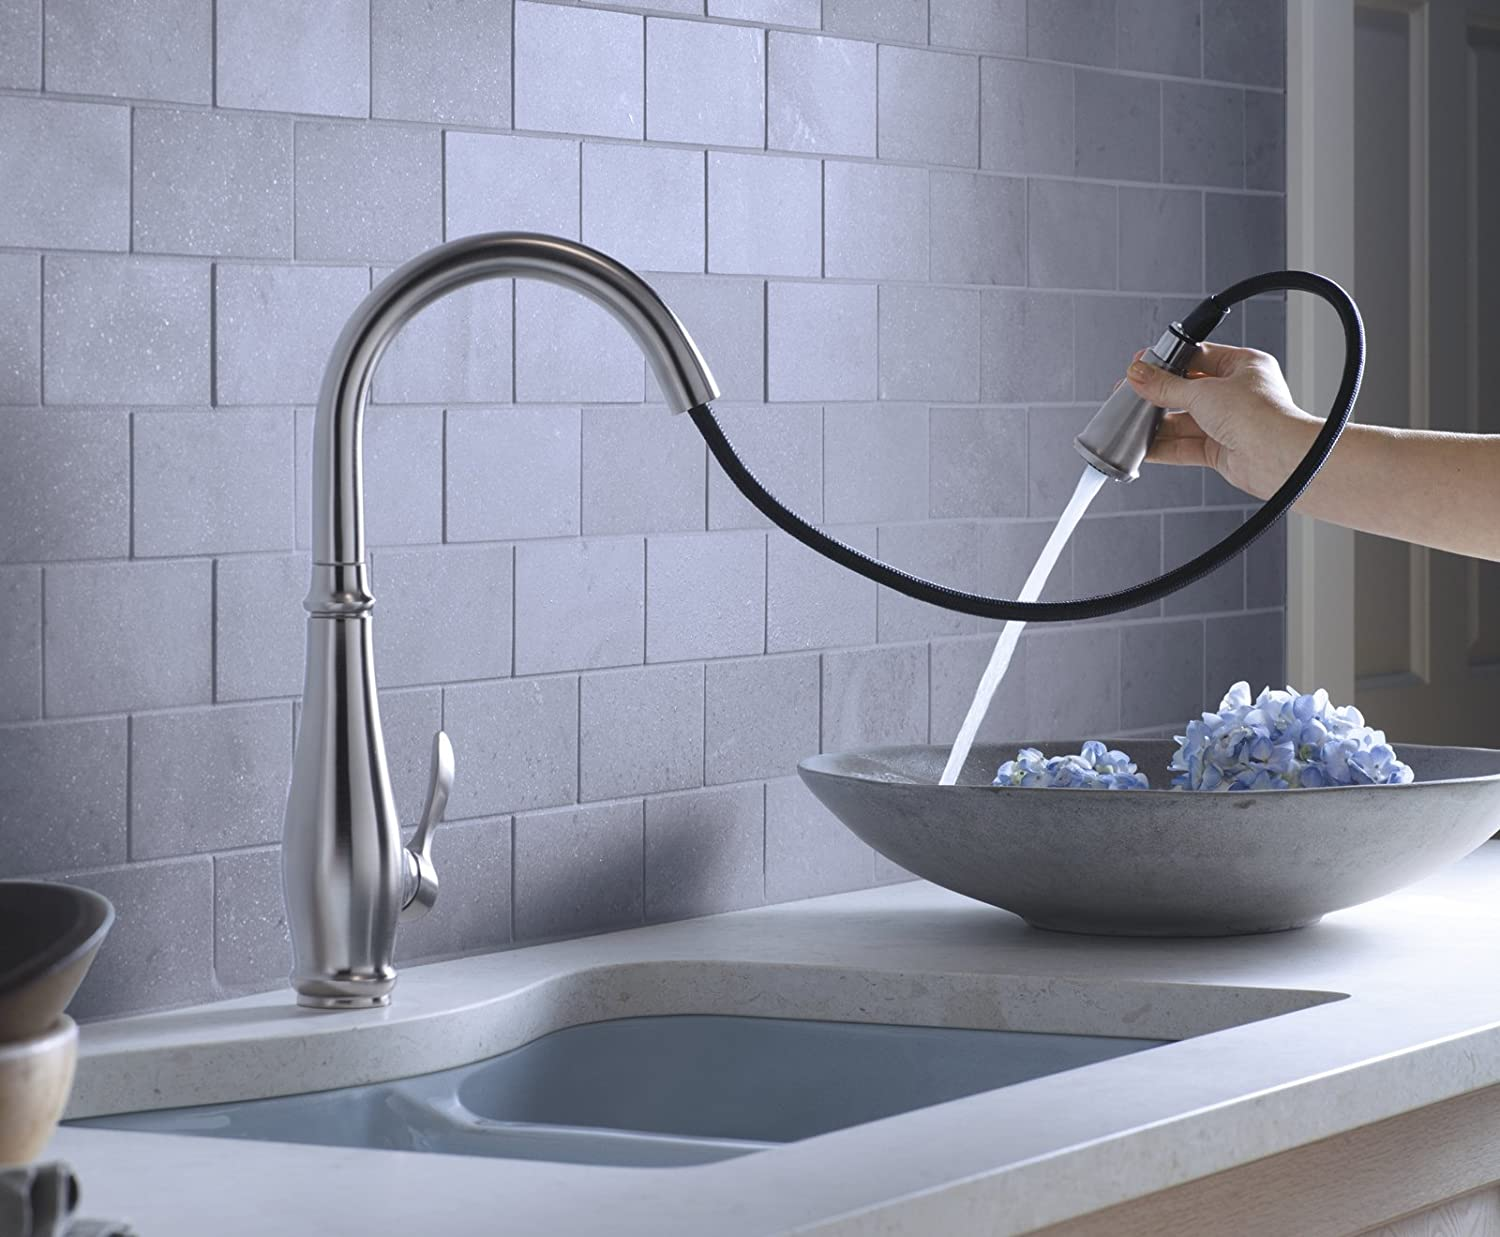 Kohler K-780-VS Cruette Pull-Down Kitchen Faucet, Vibrant Stainless ...